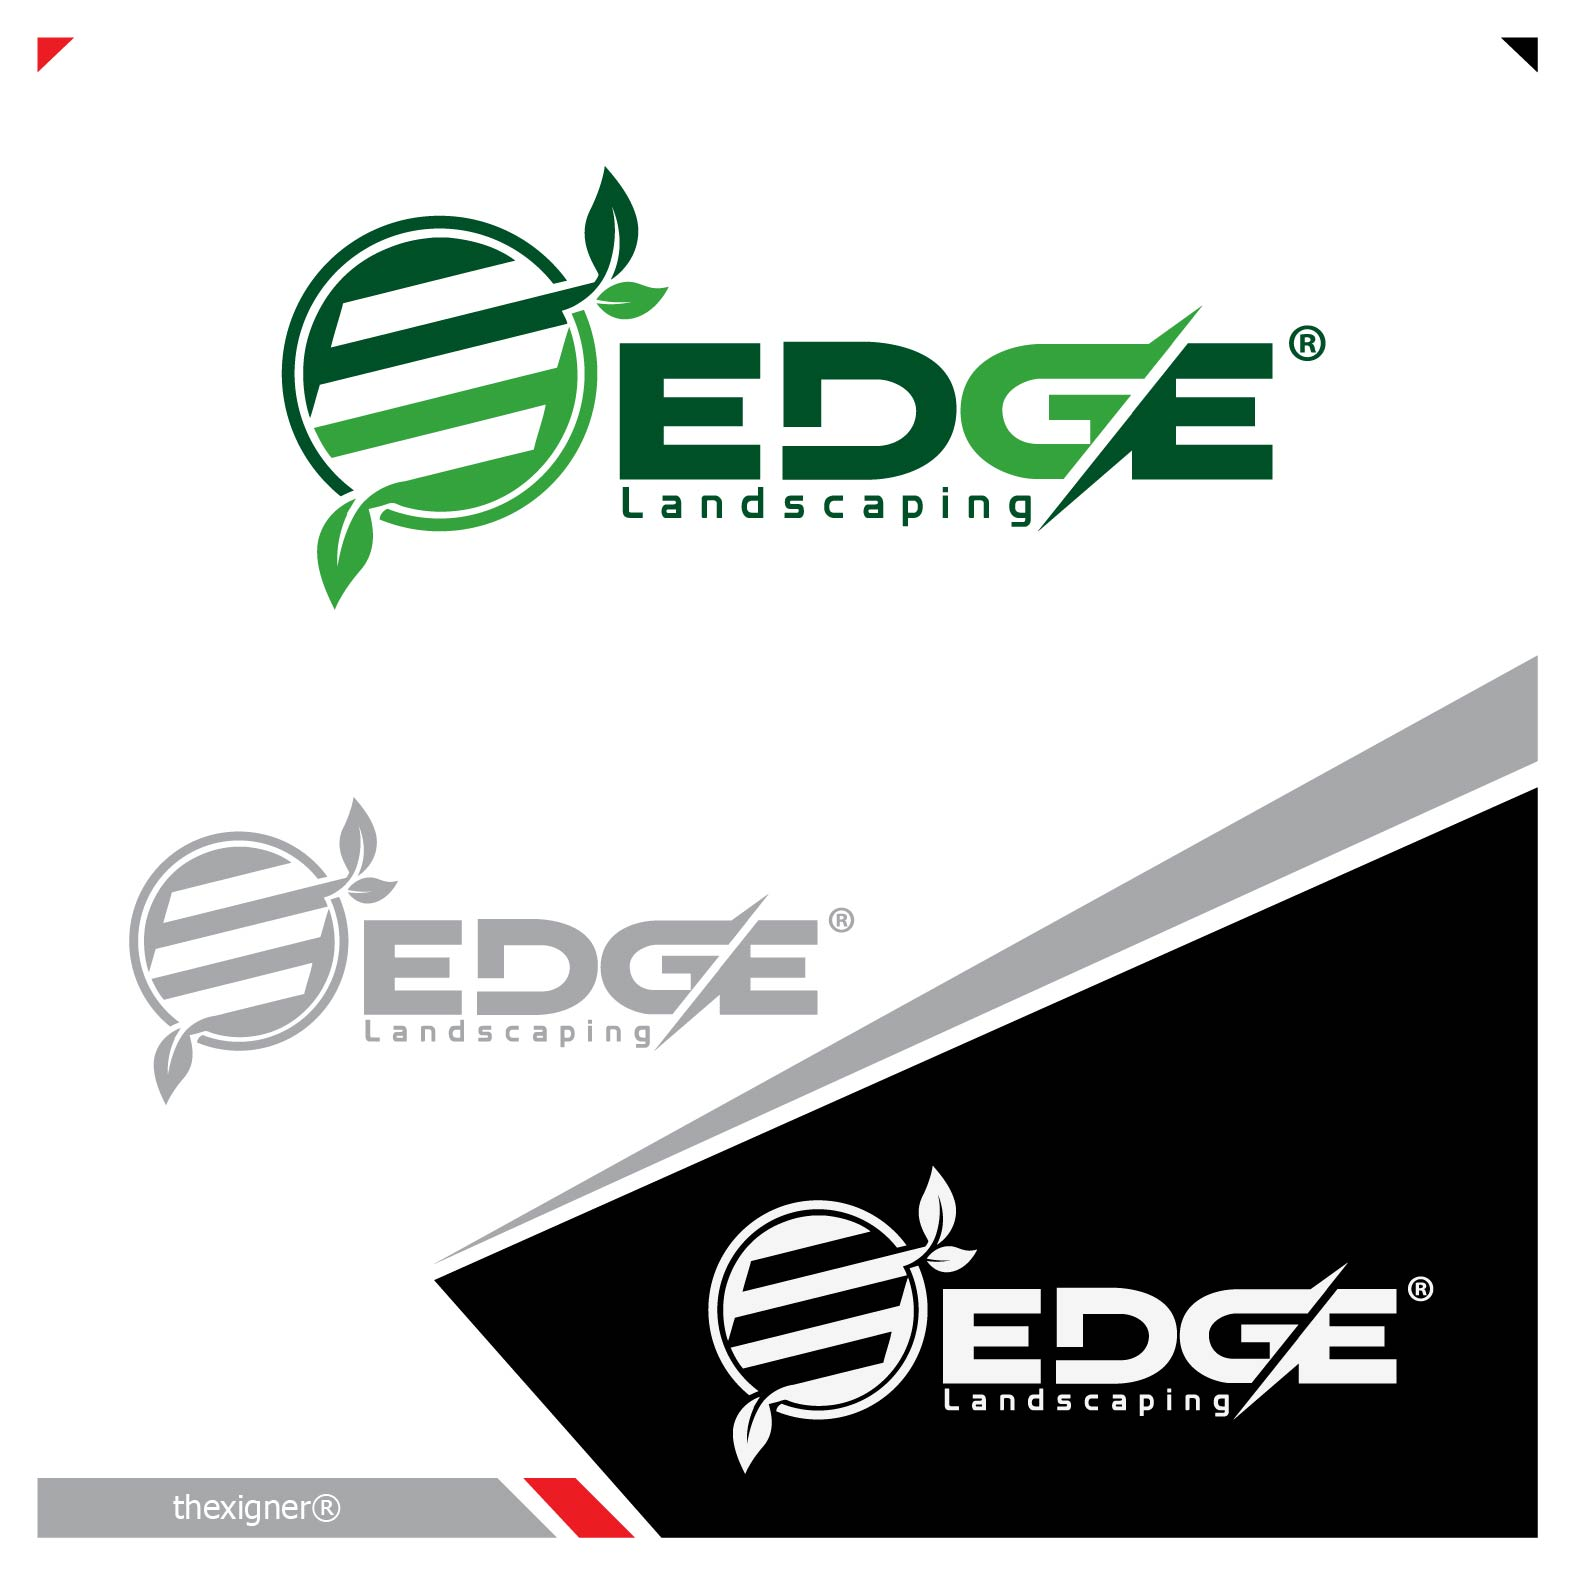 Logo Design by lagalag - Entry No. 148 in the Logo Design Contest Inspiring Logo Design for Edge Landscaping.